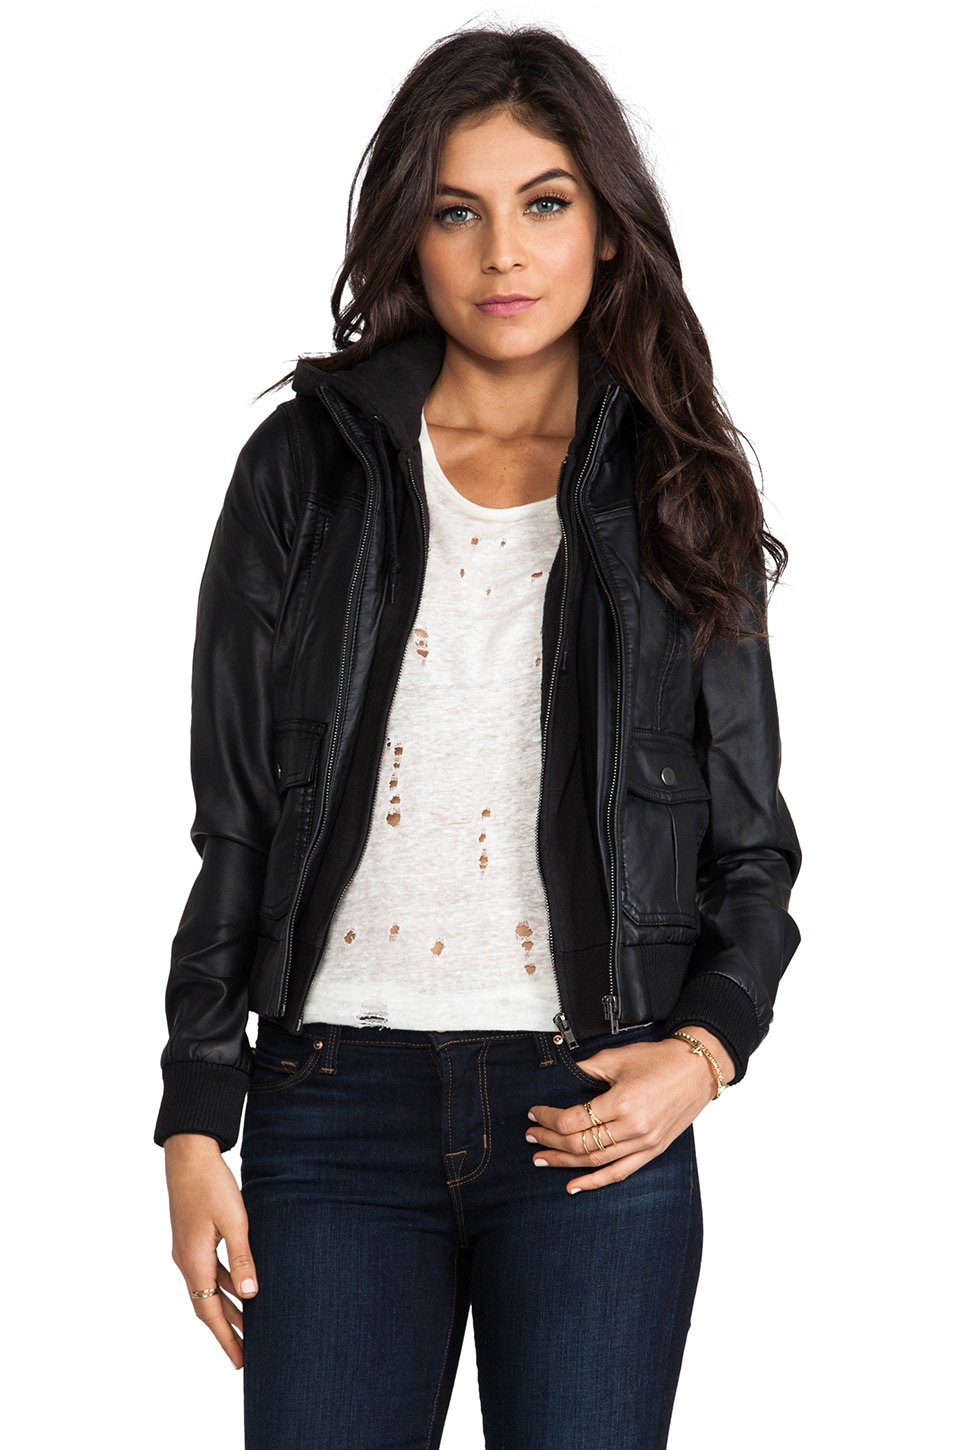 Obey Jealous Lover Jacket in Black